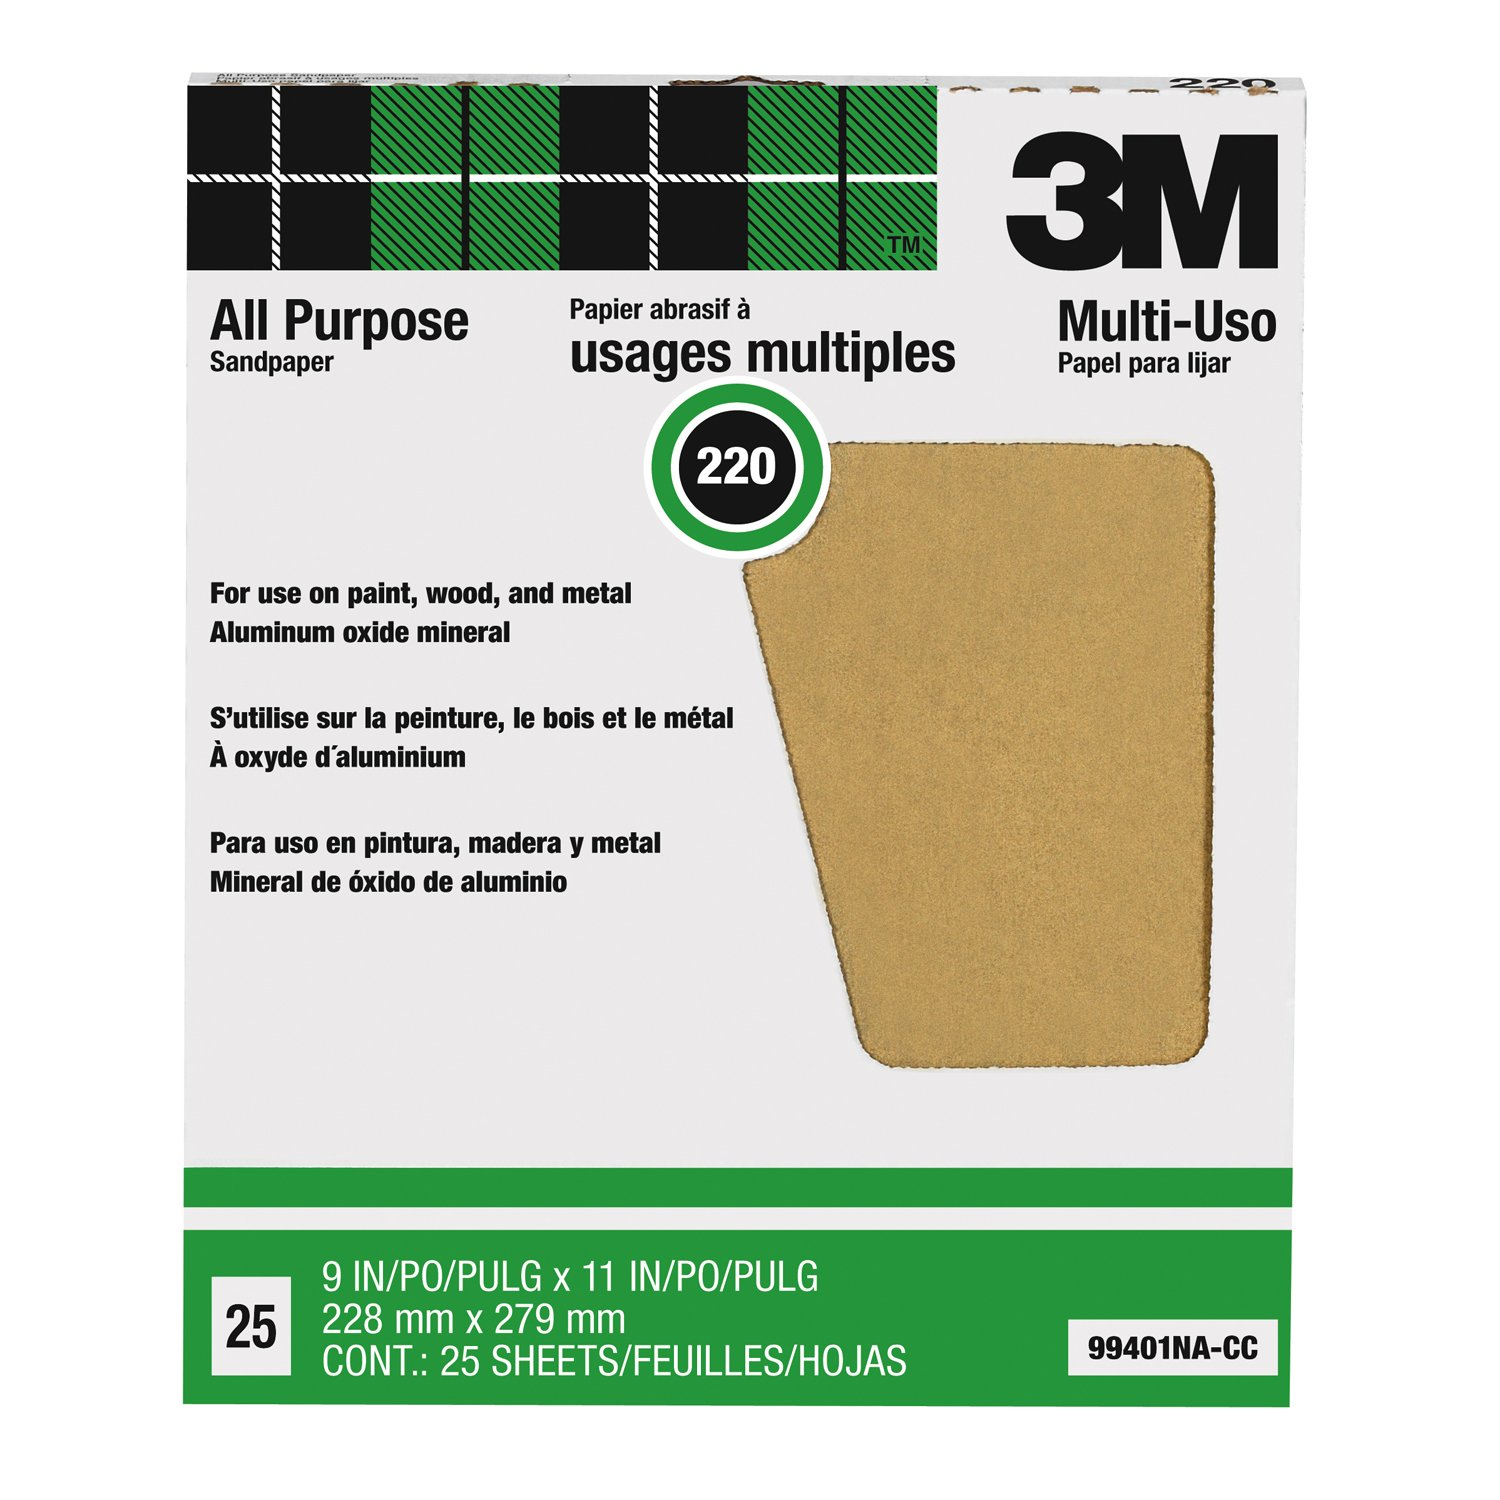 3M Pro-Pak Aluminum Oxide Sheet for Paint and Rust Removal, 25 sheets, 220-Grit, 9-Inch by 11-Inch